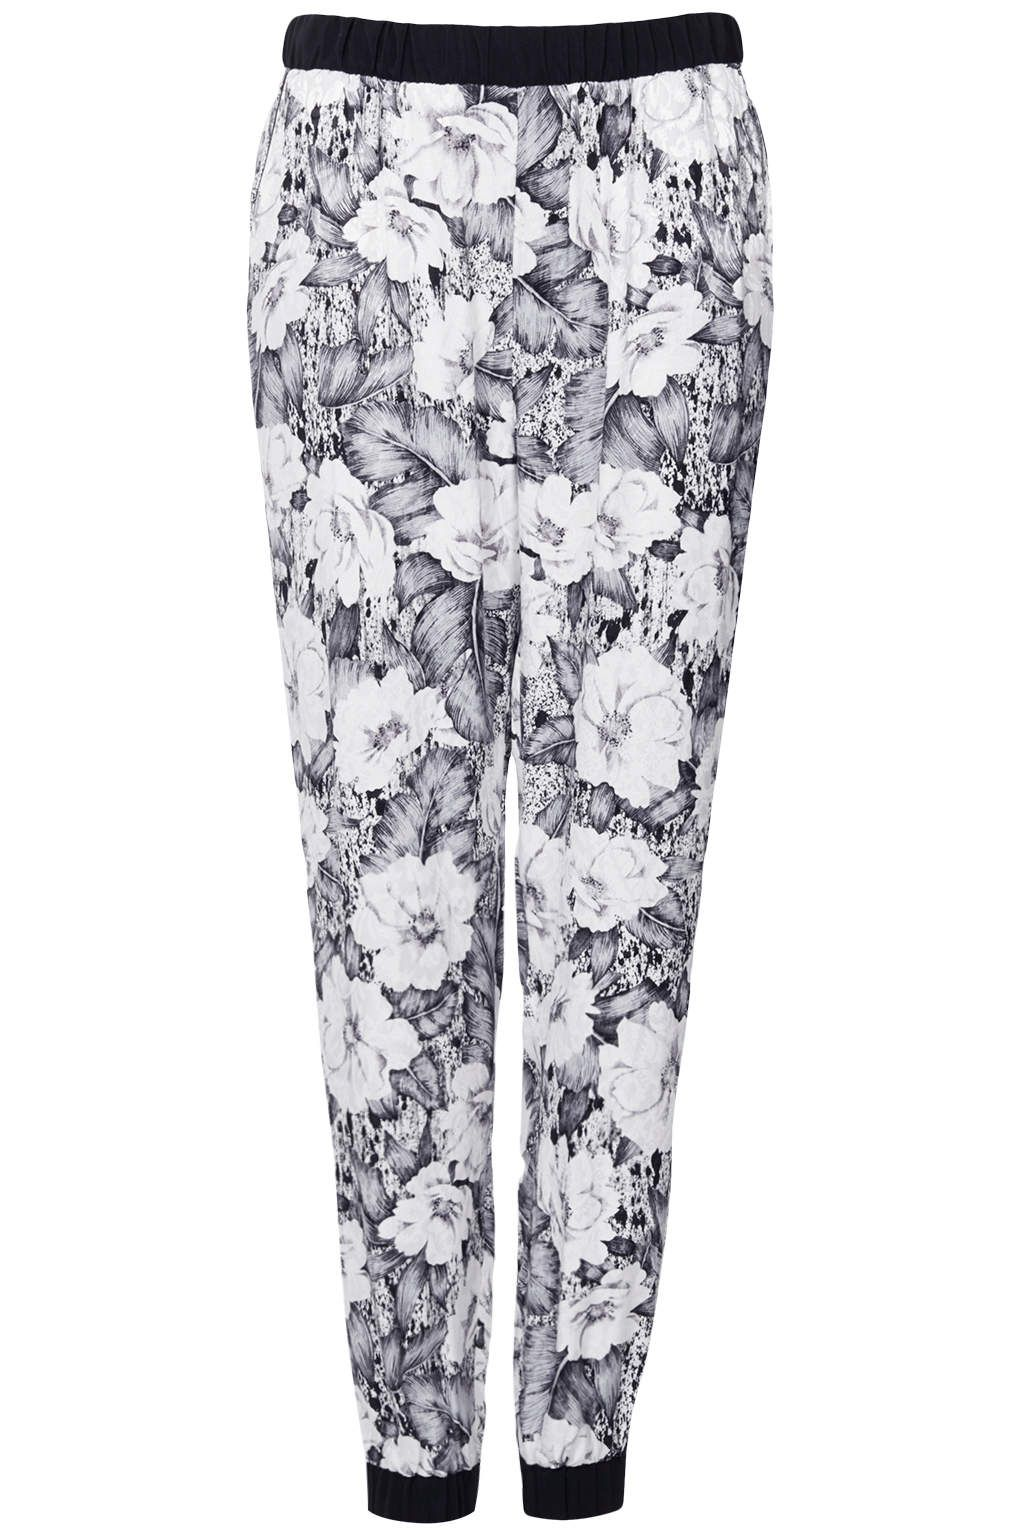 Aloha Monochrome Joggers - Make It In Monochrome - New In - Topshop